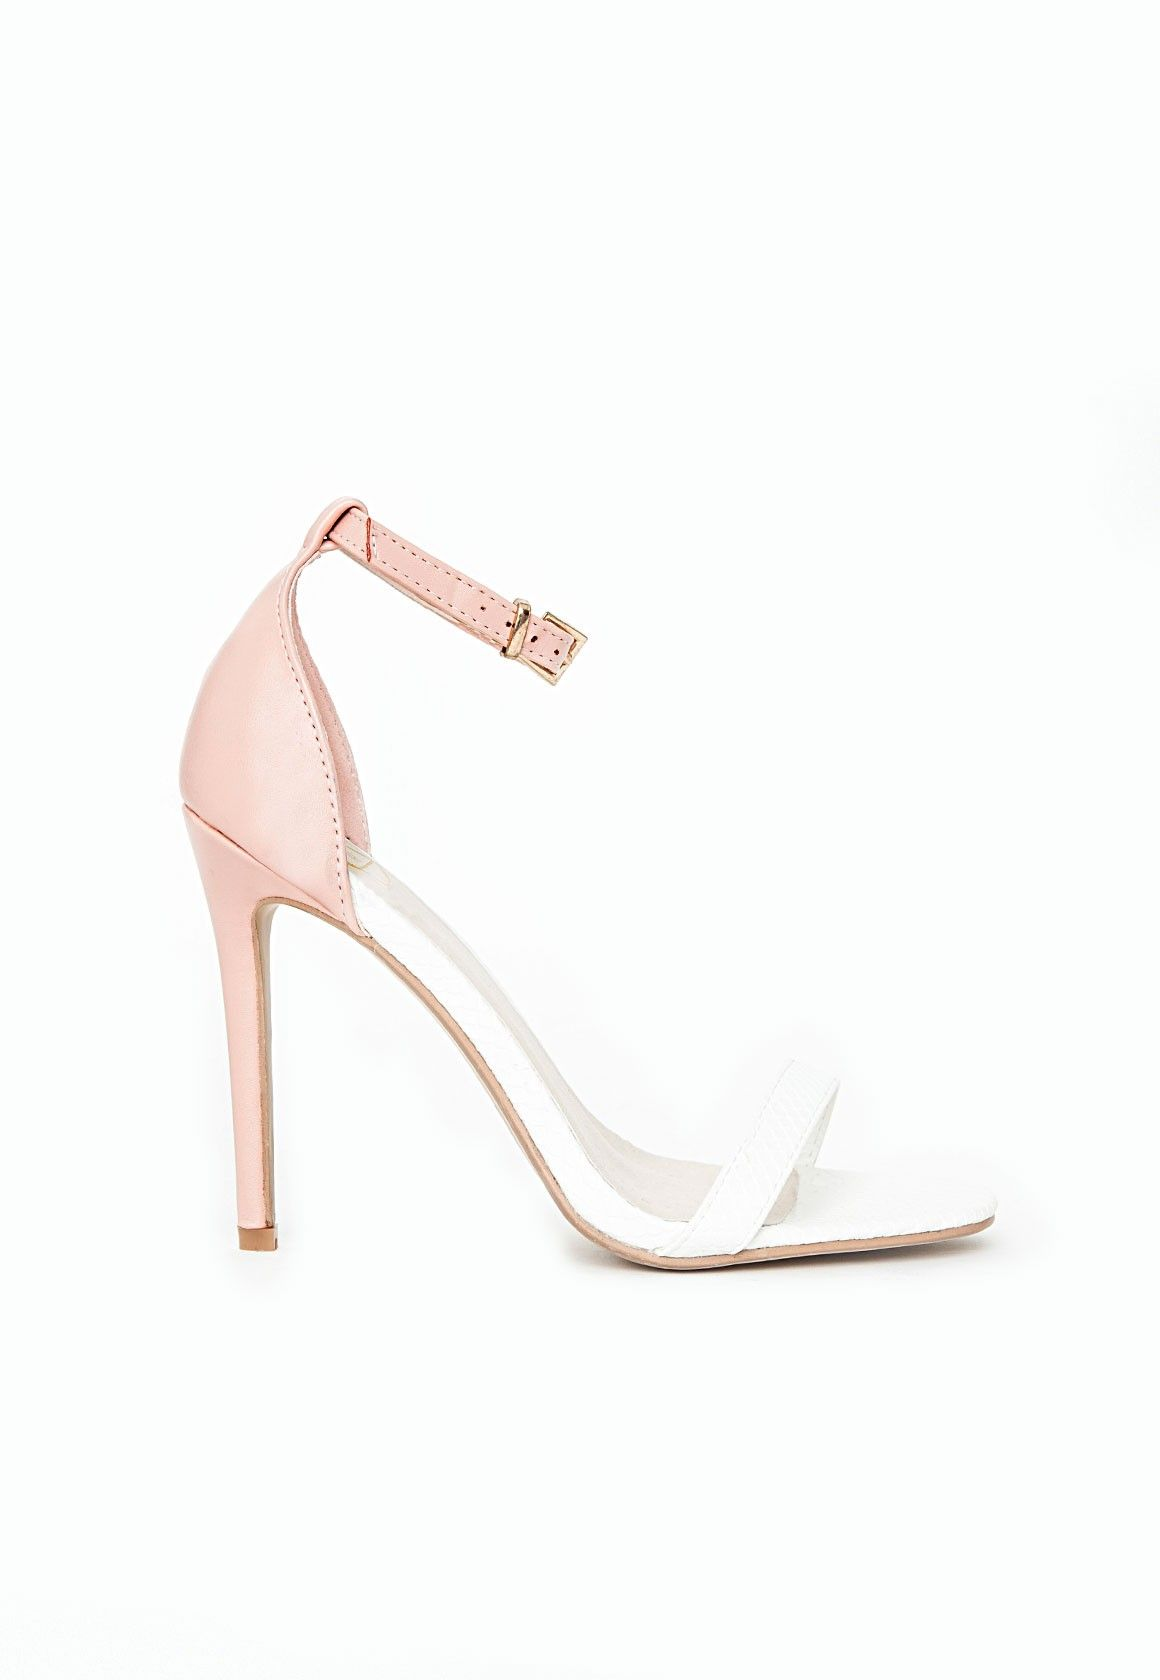 0739f575c21 Missguided - Clara Contrast Snake Print Strappy Heeled Sandals Blush ...